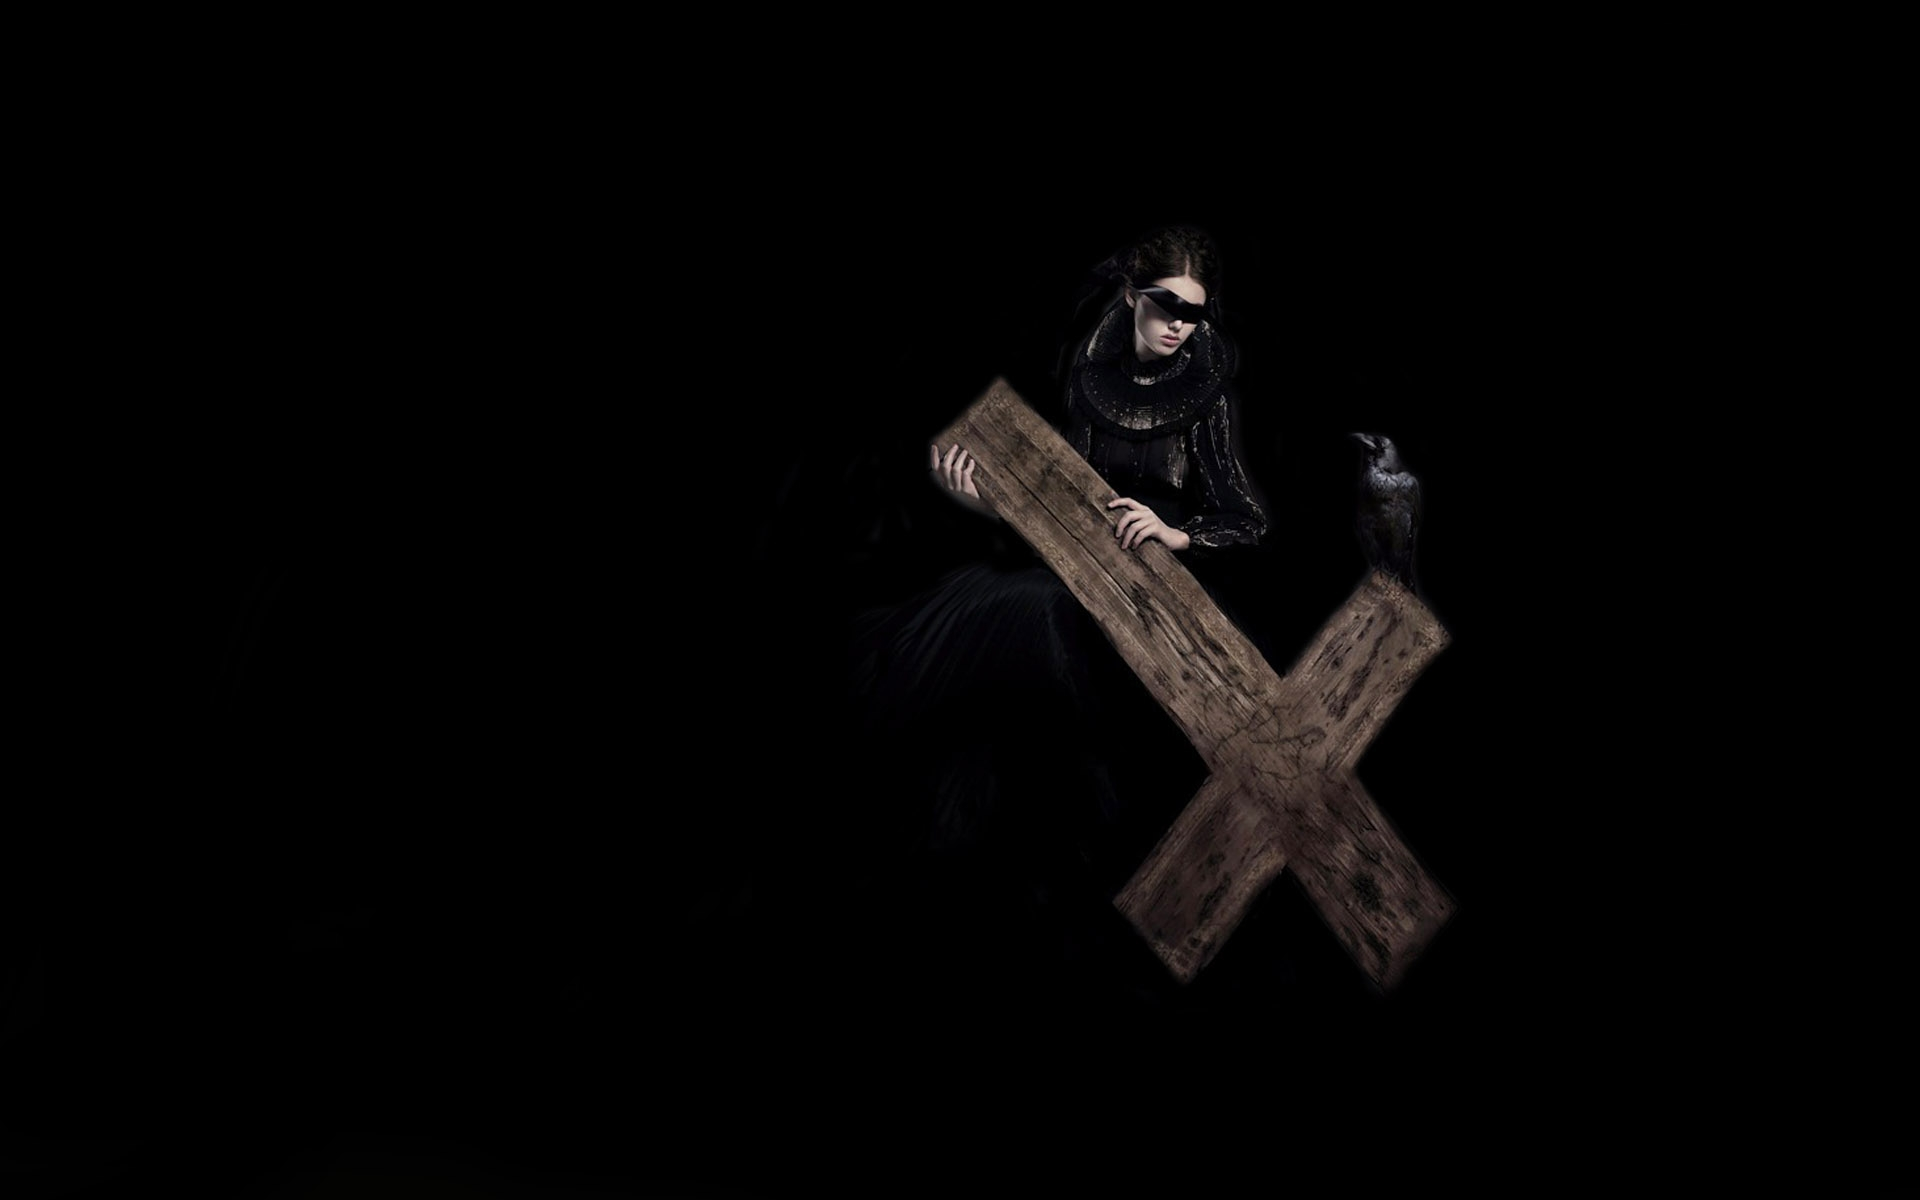 gothic cross evil woemn raven birds occult anti satan demon wallpaper 1920x1200